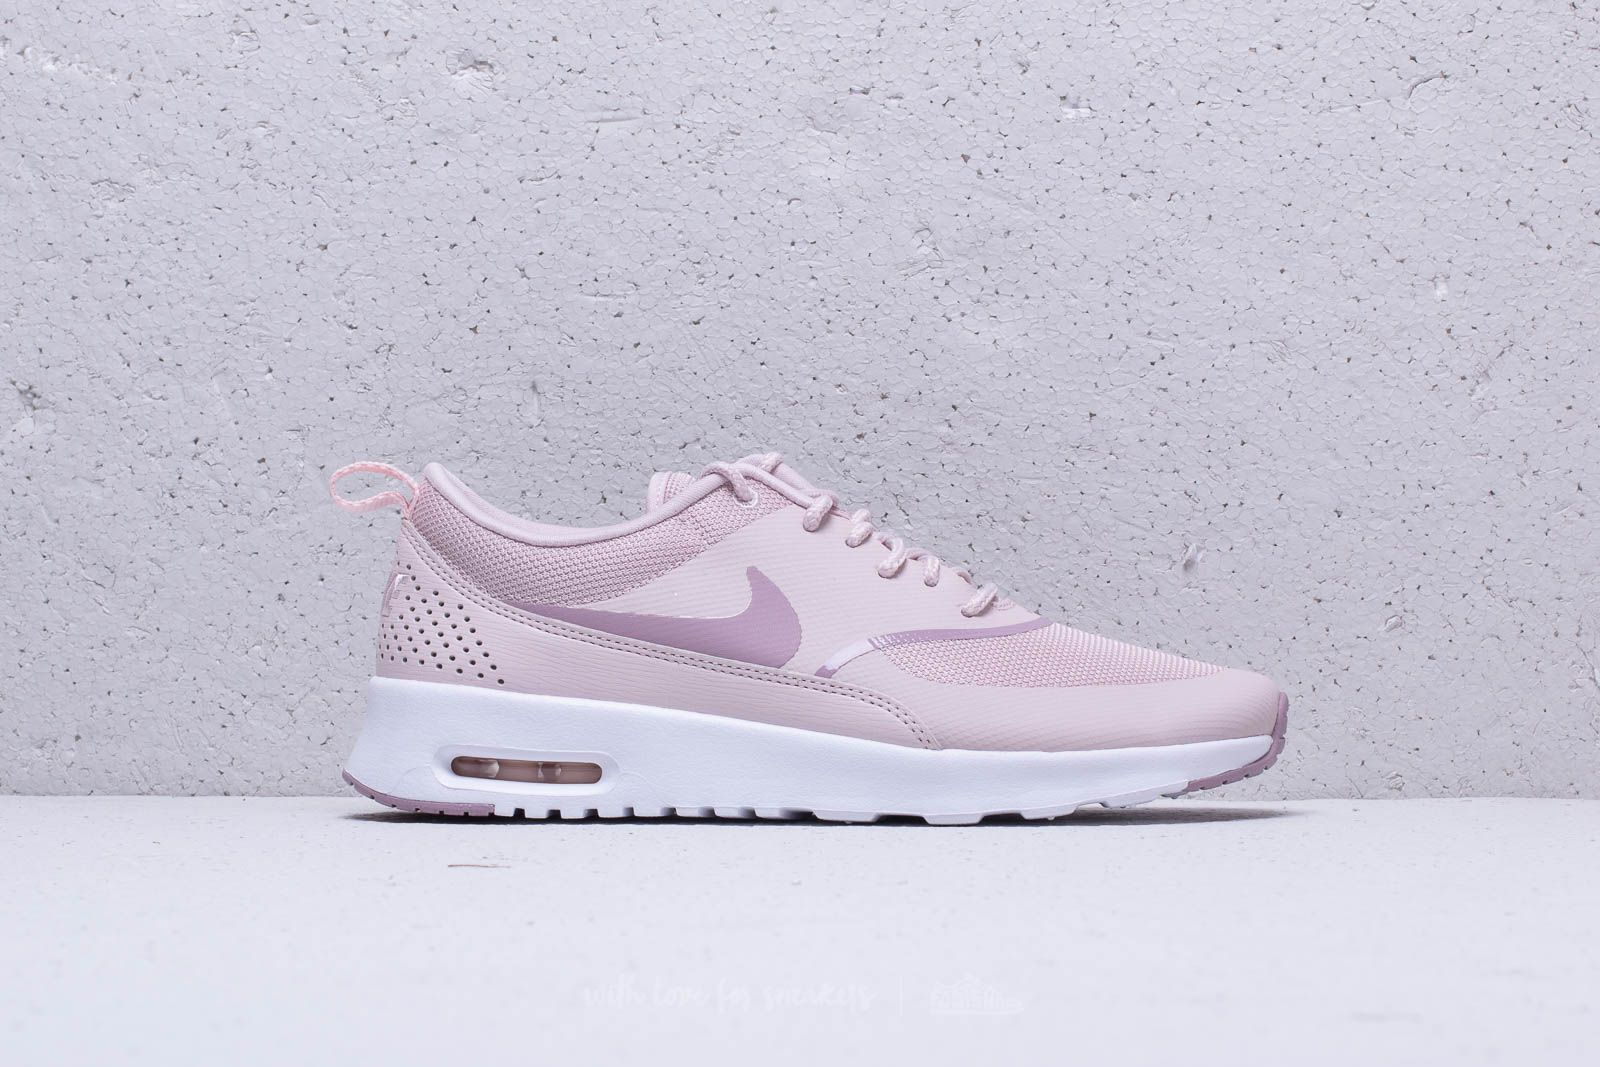 Nike WMNS Air Max Thea Barely Rose Elemental Rose   Footshop